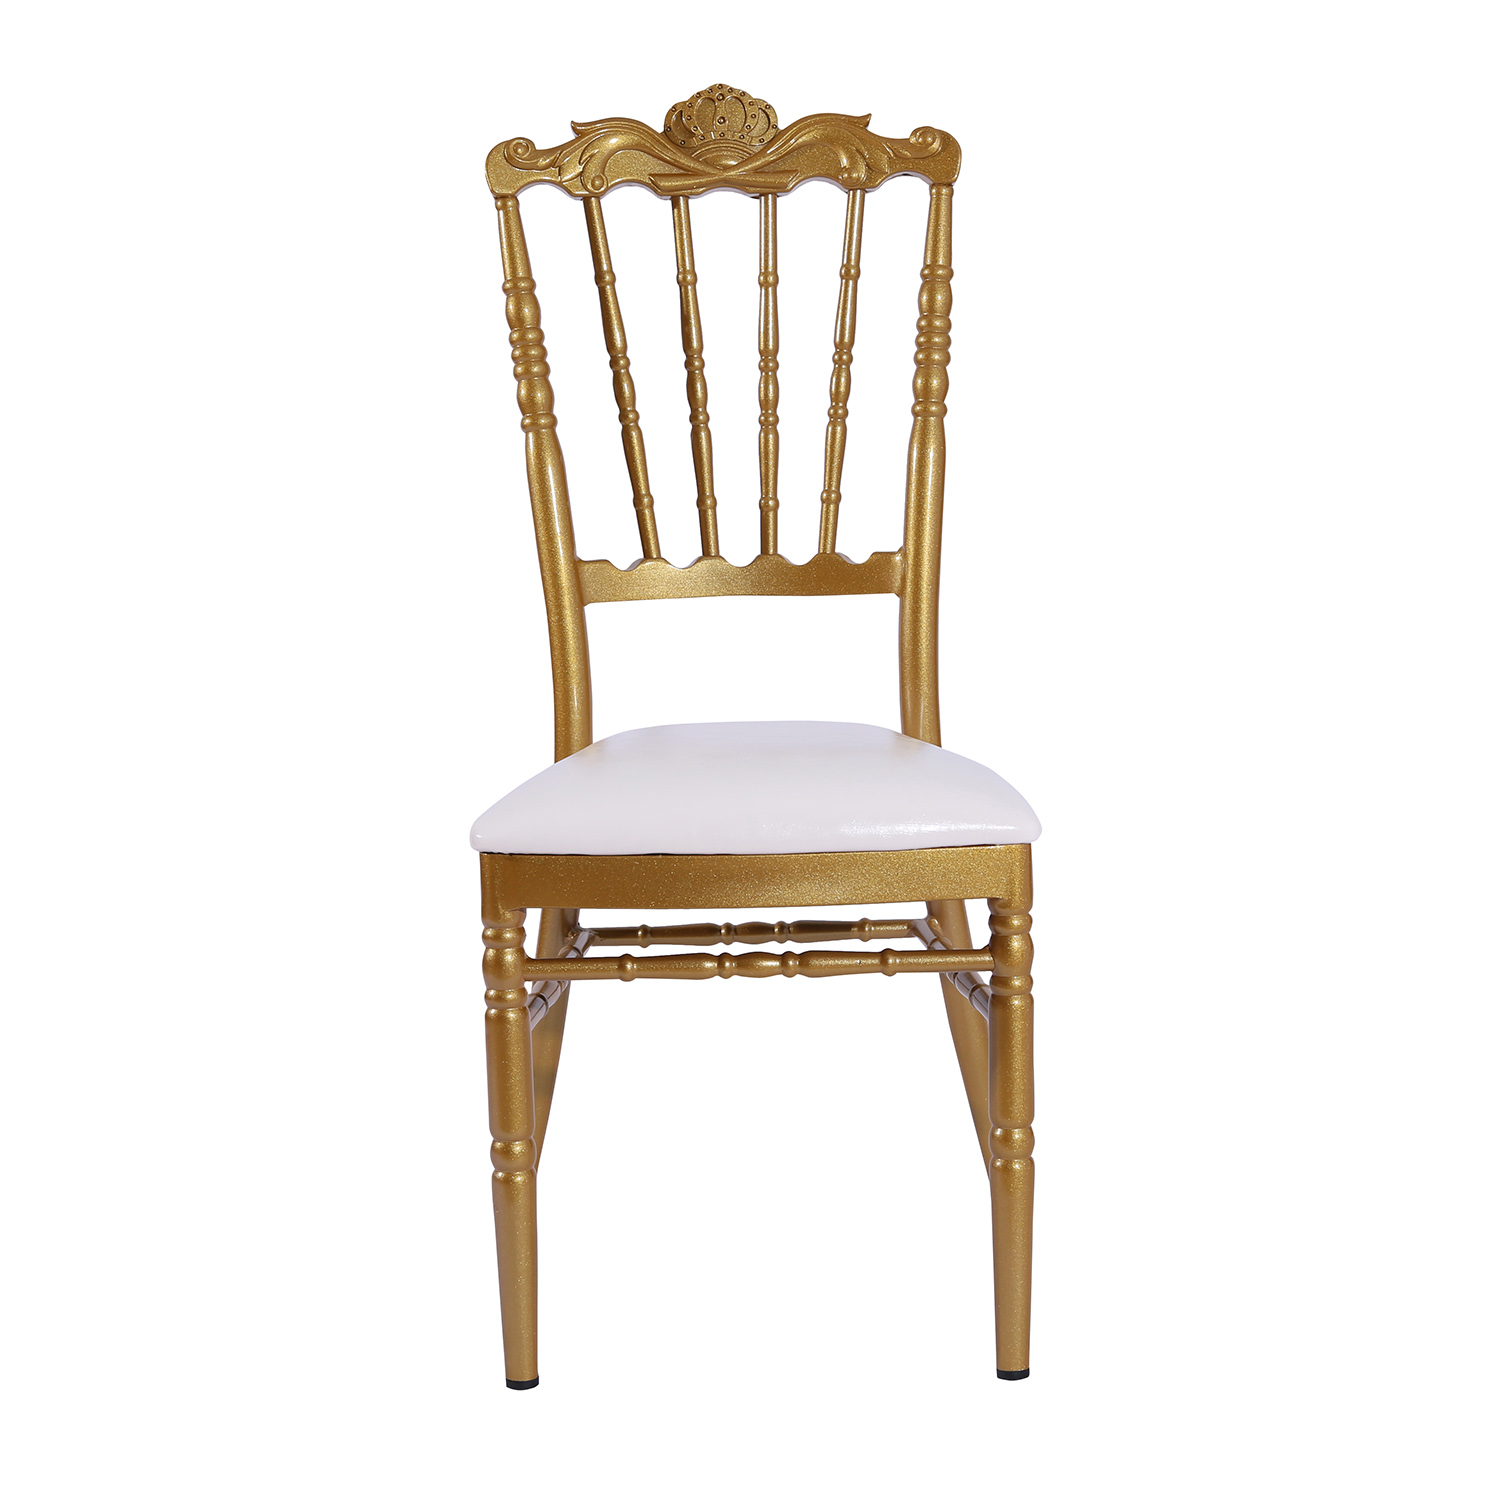 San Dun reliable chiavari chairs with cushions directly sale for promotion-2